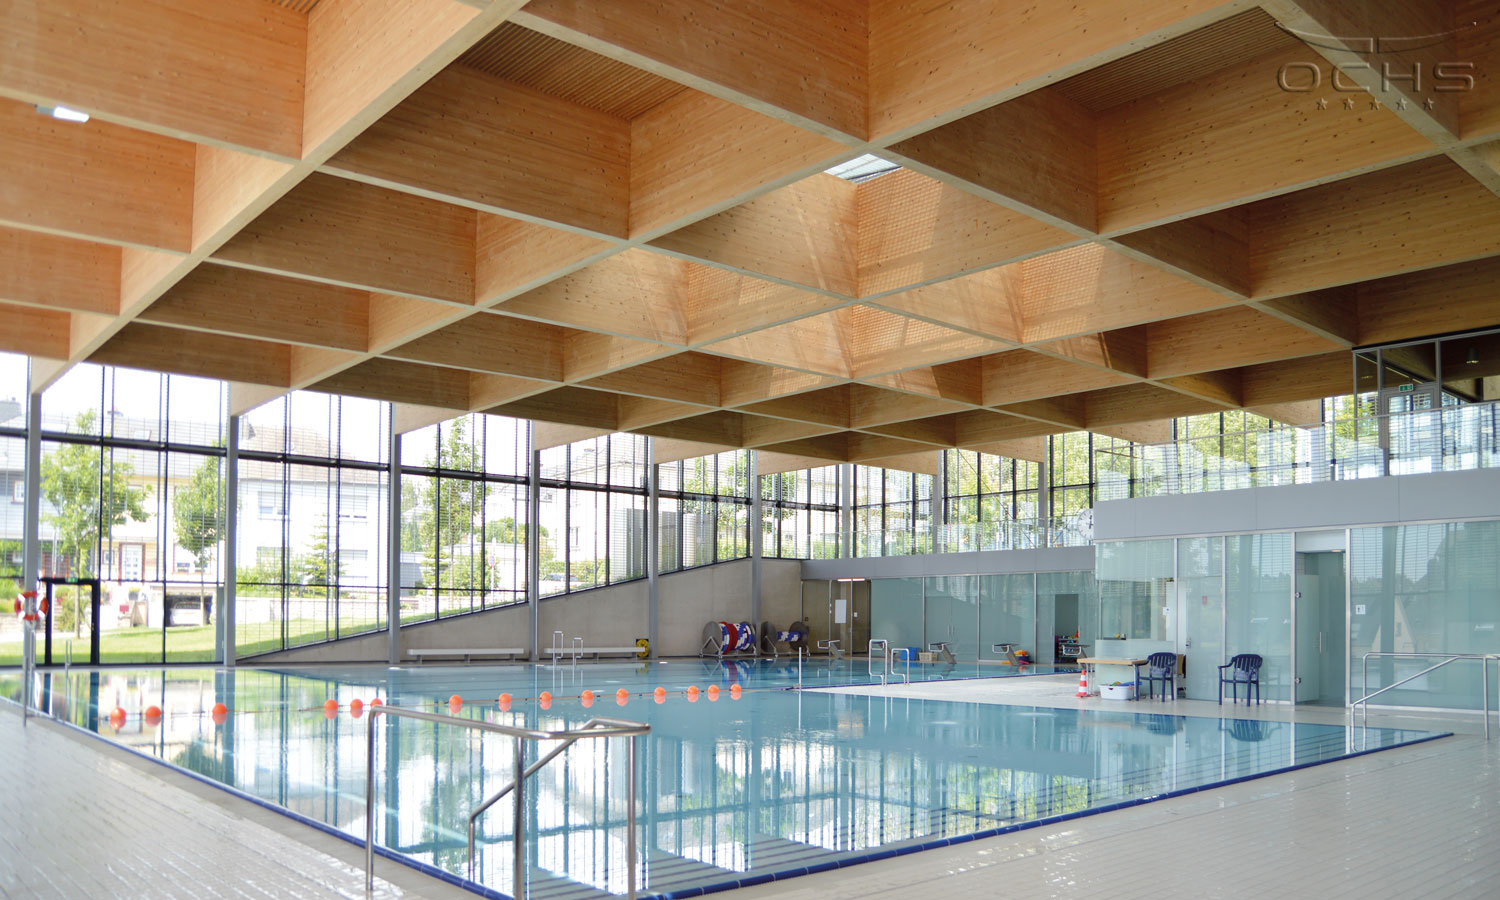 Centre des sports belair swimming pool ochs holzbau we are your partner for complex timber for Swimming pool luxembourg kirchberg